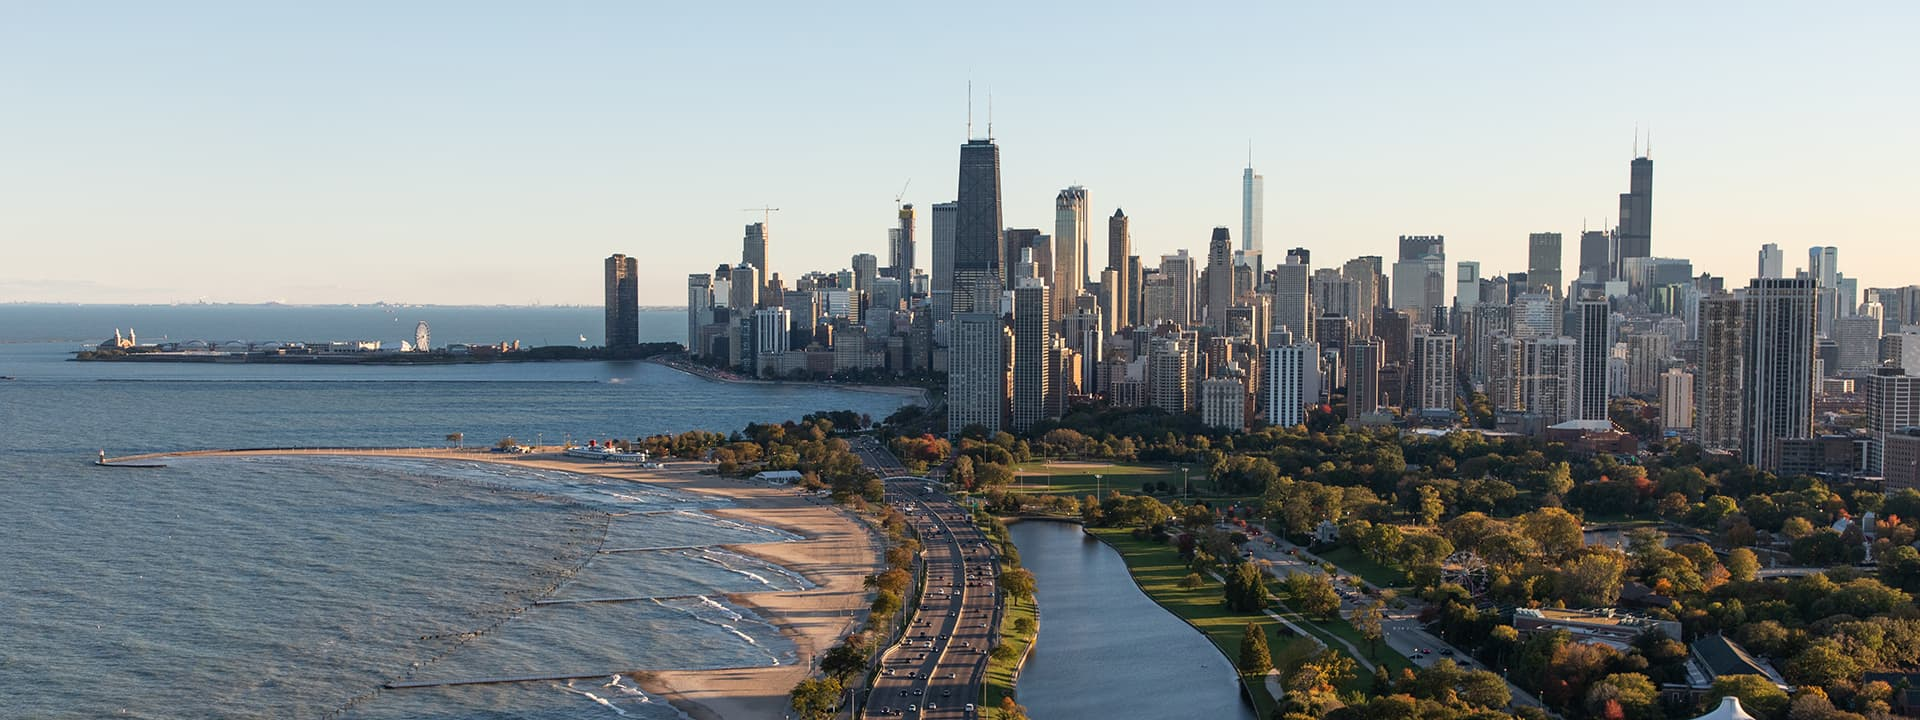 Aerial view of Chicago skyline